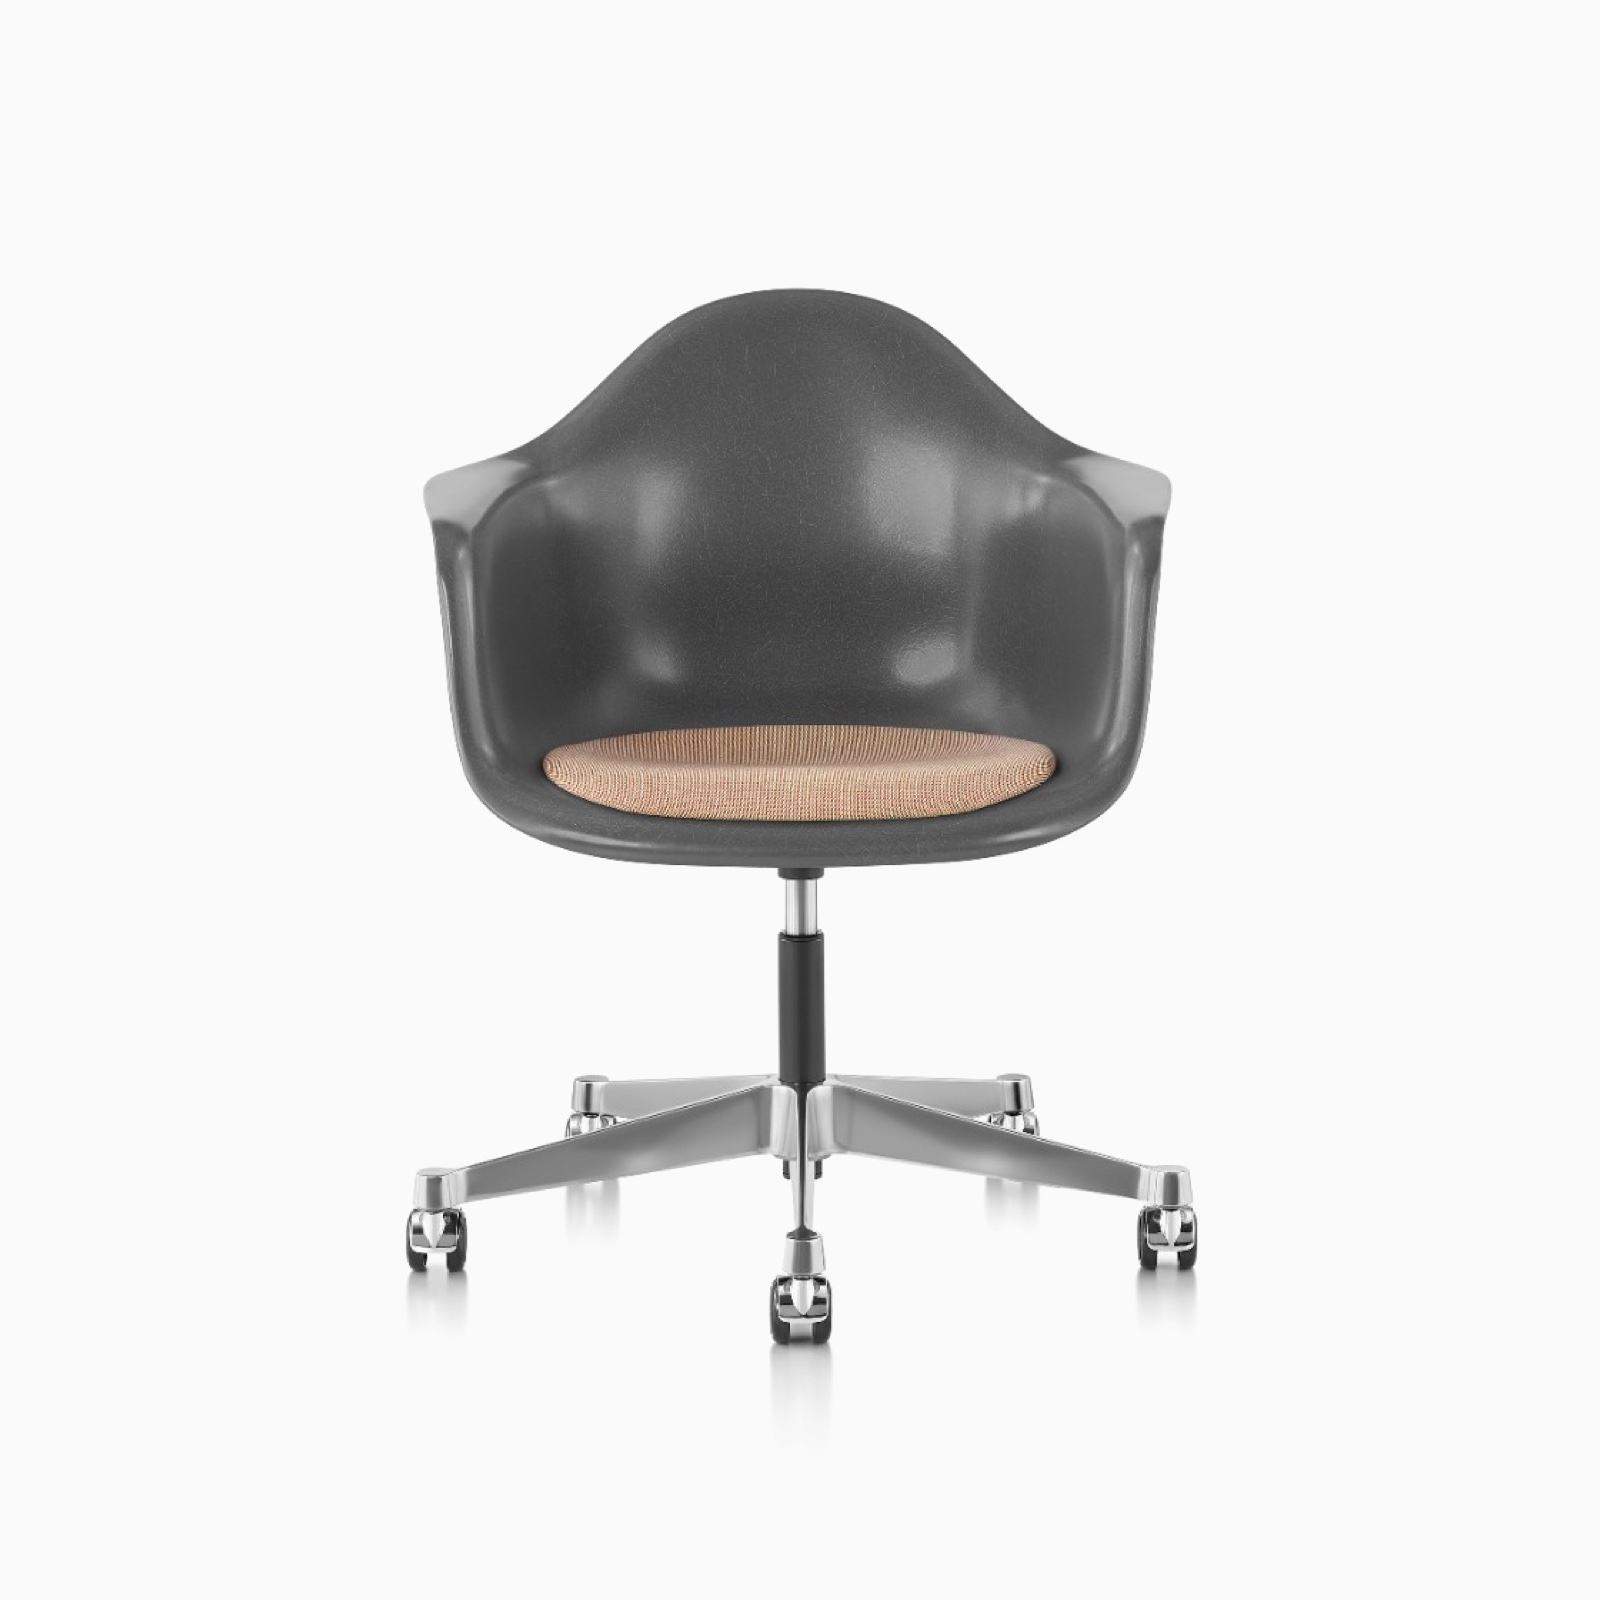 Eames Chair Bim The Collection At Work Teaming With Life